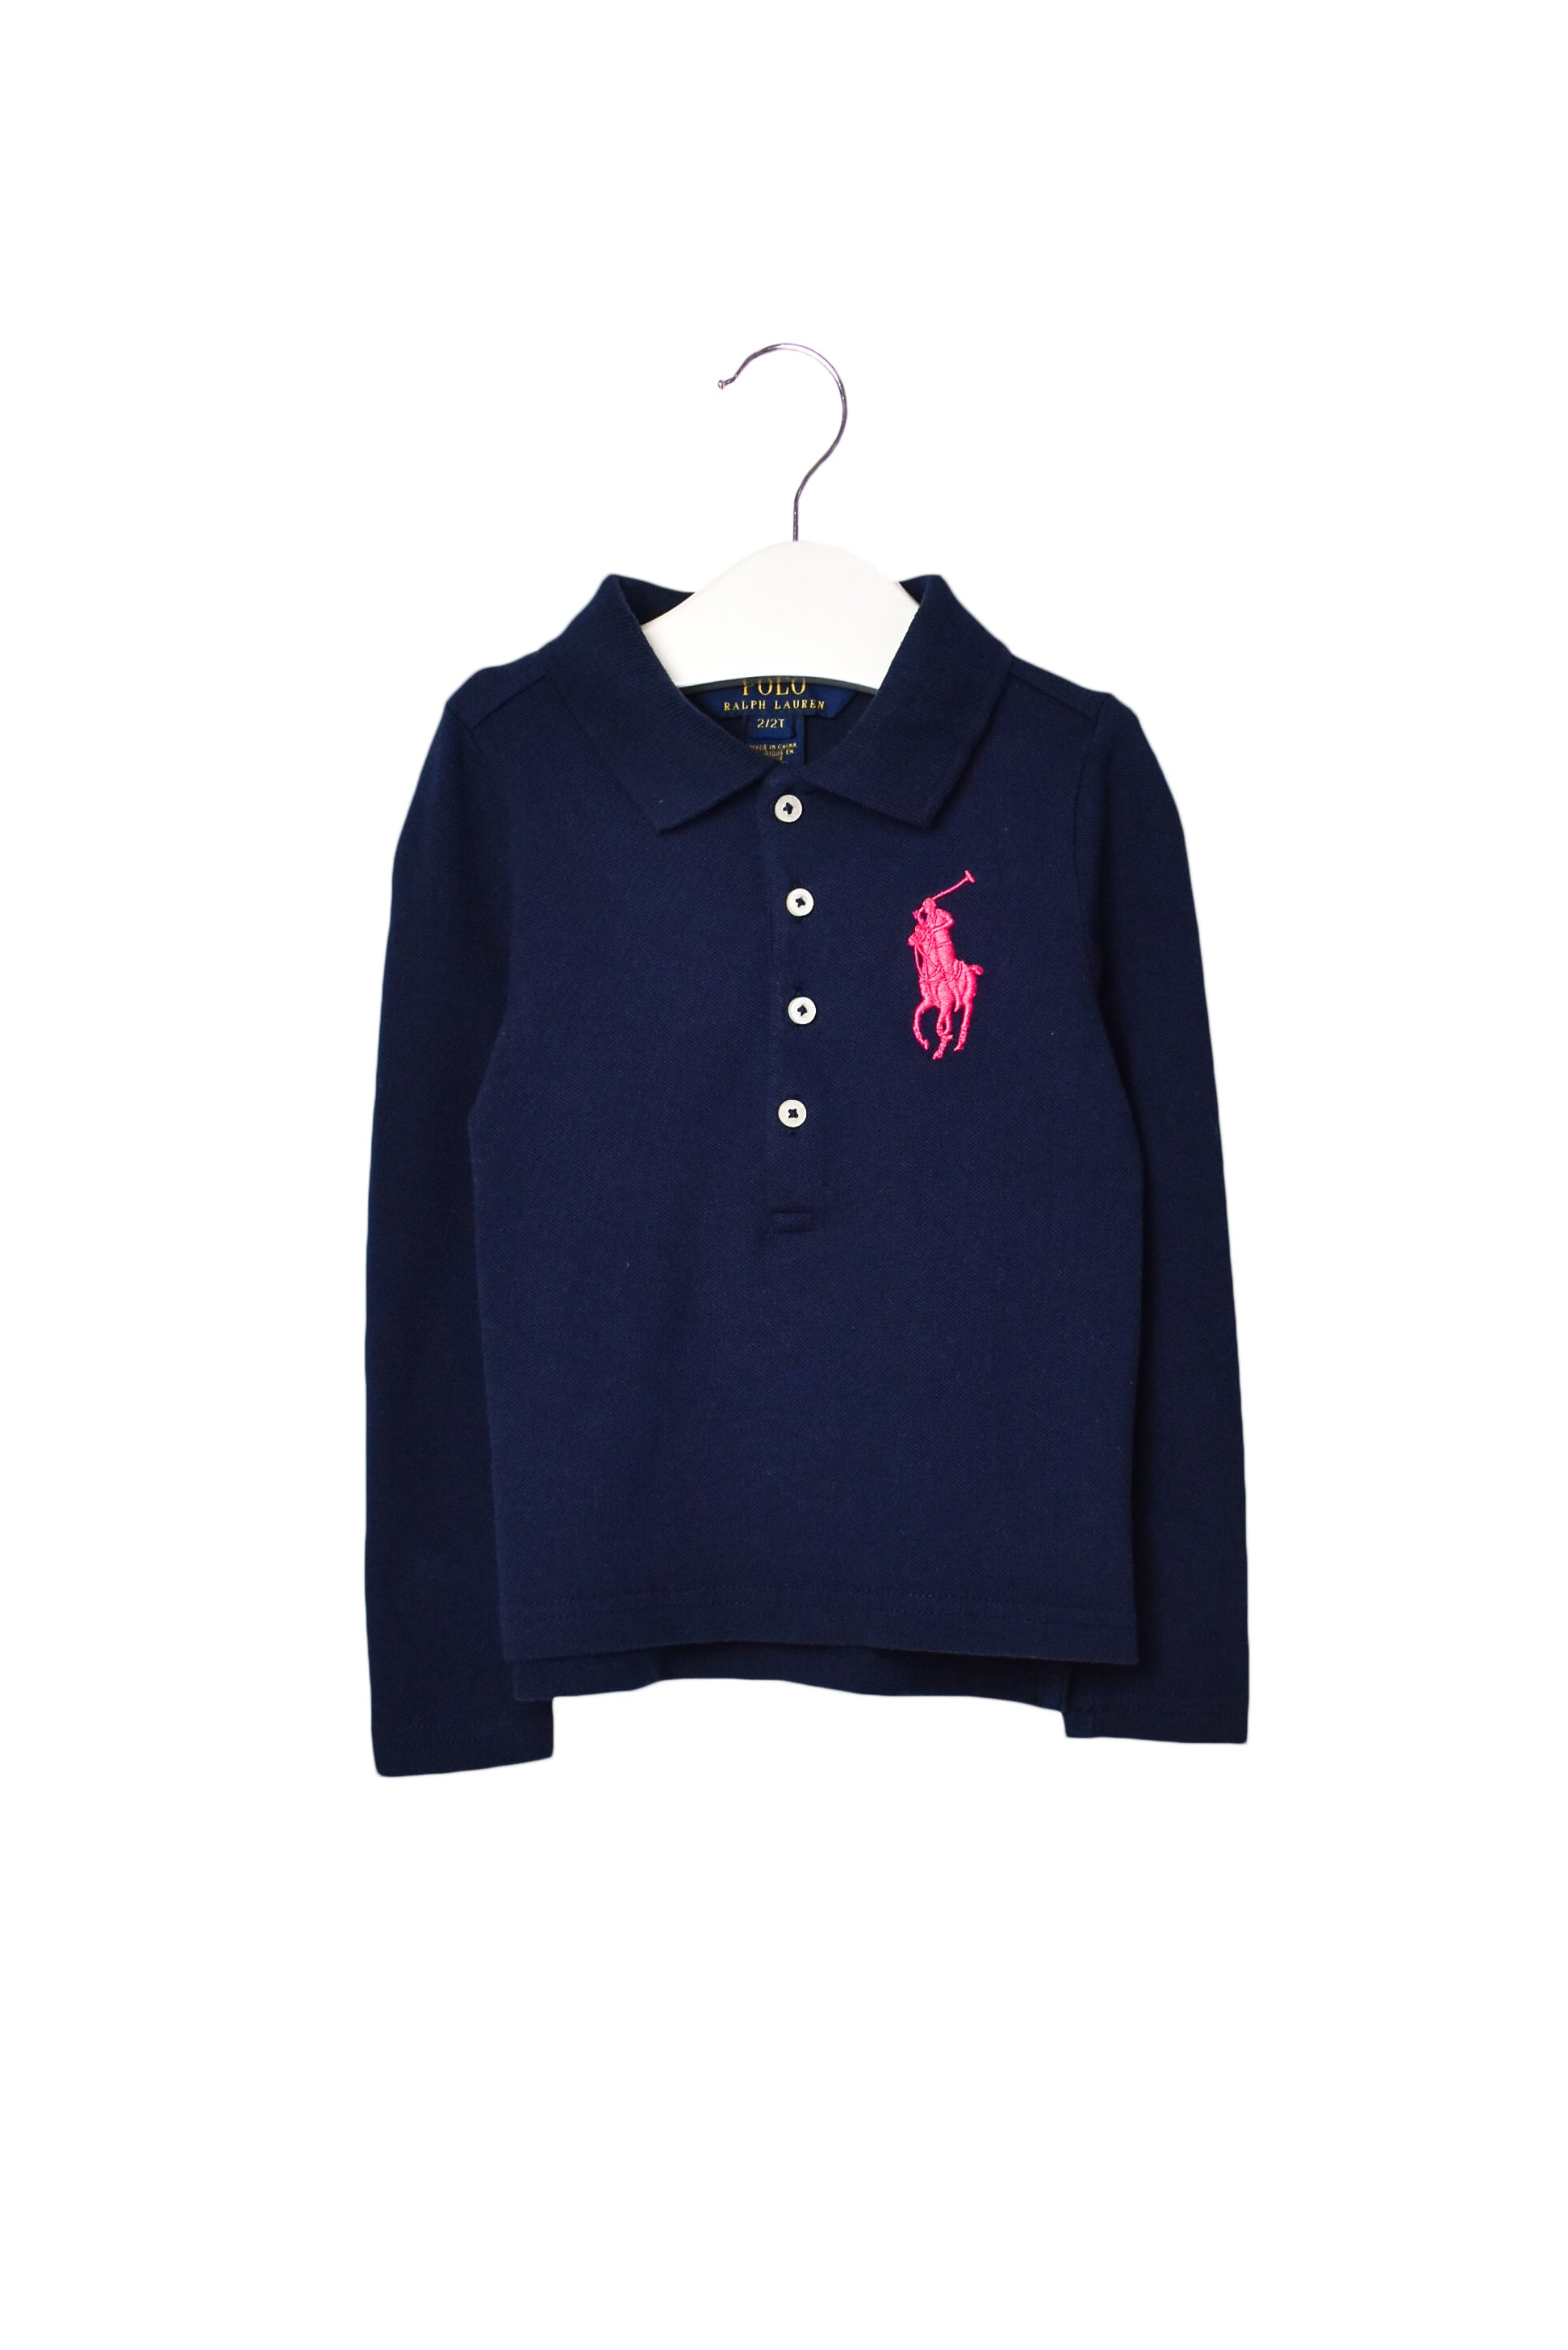 10006670 Polo Ralph Lauren Kids~Polo 2T at Retykle